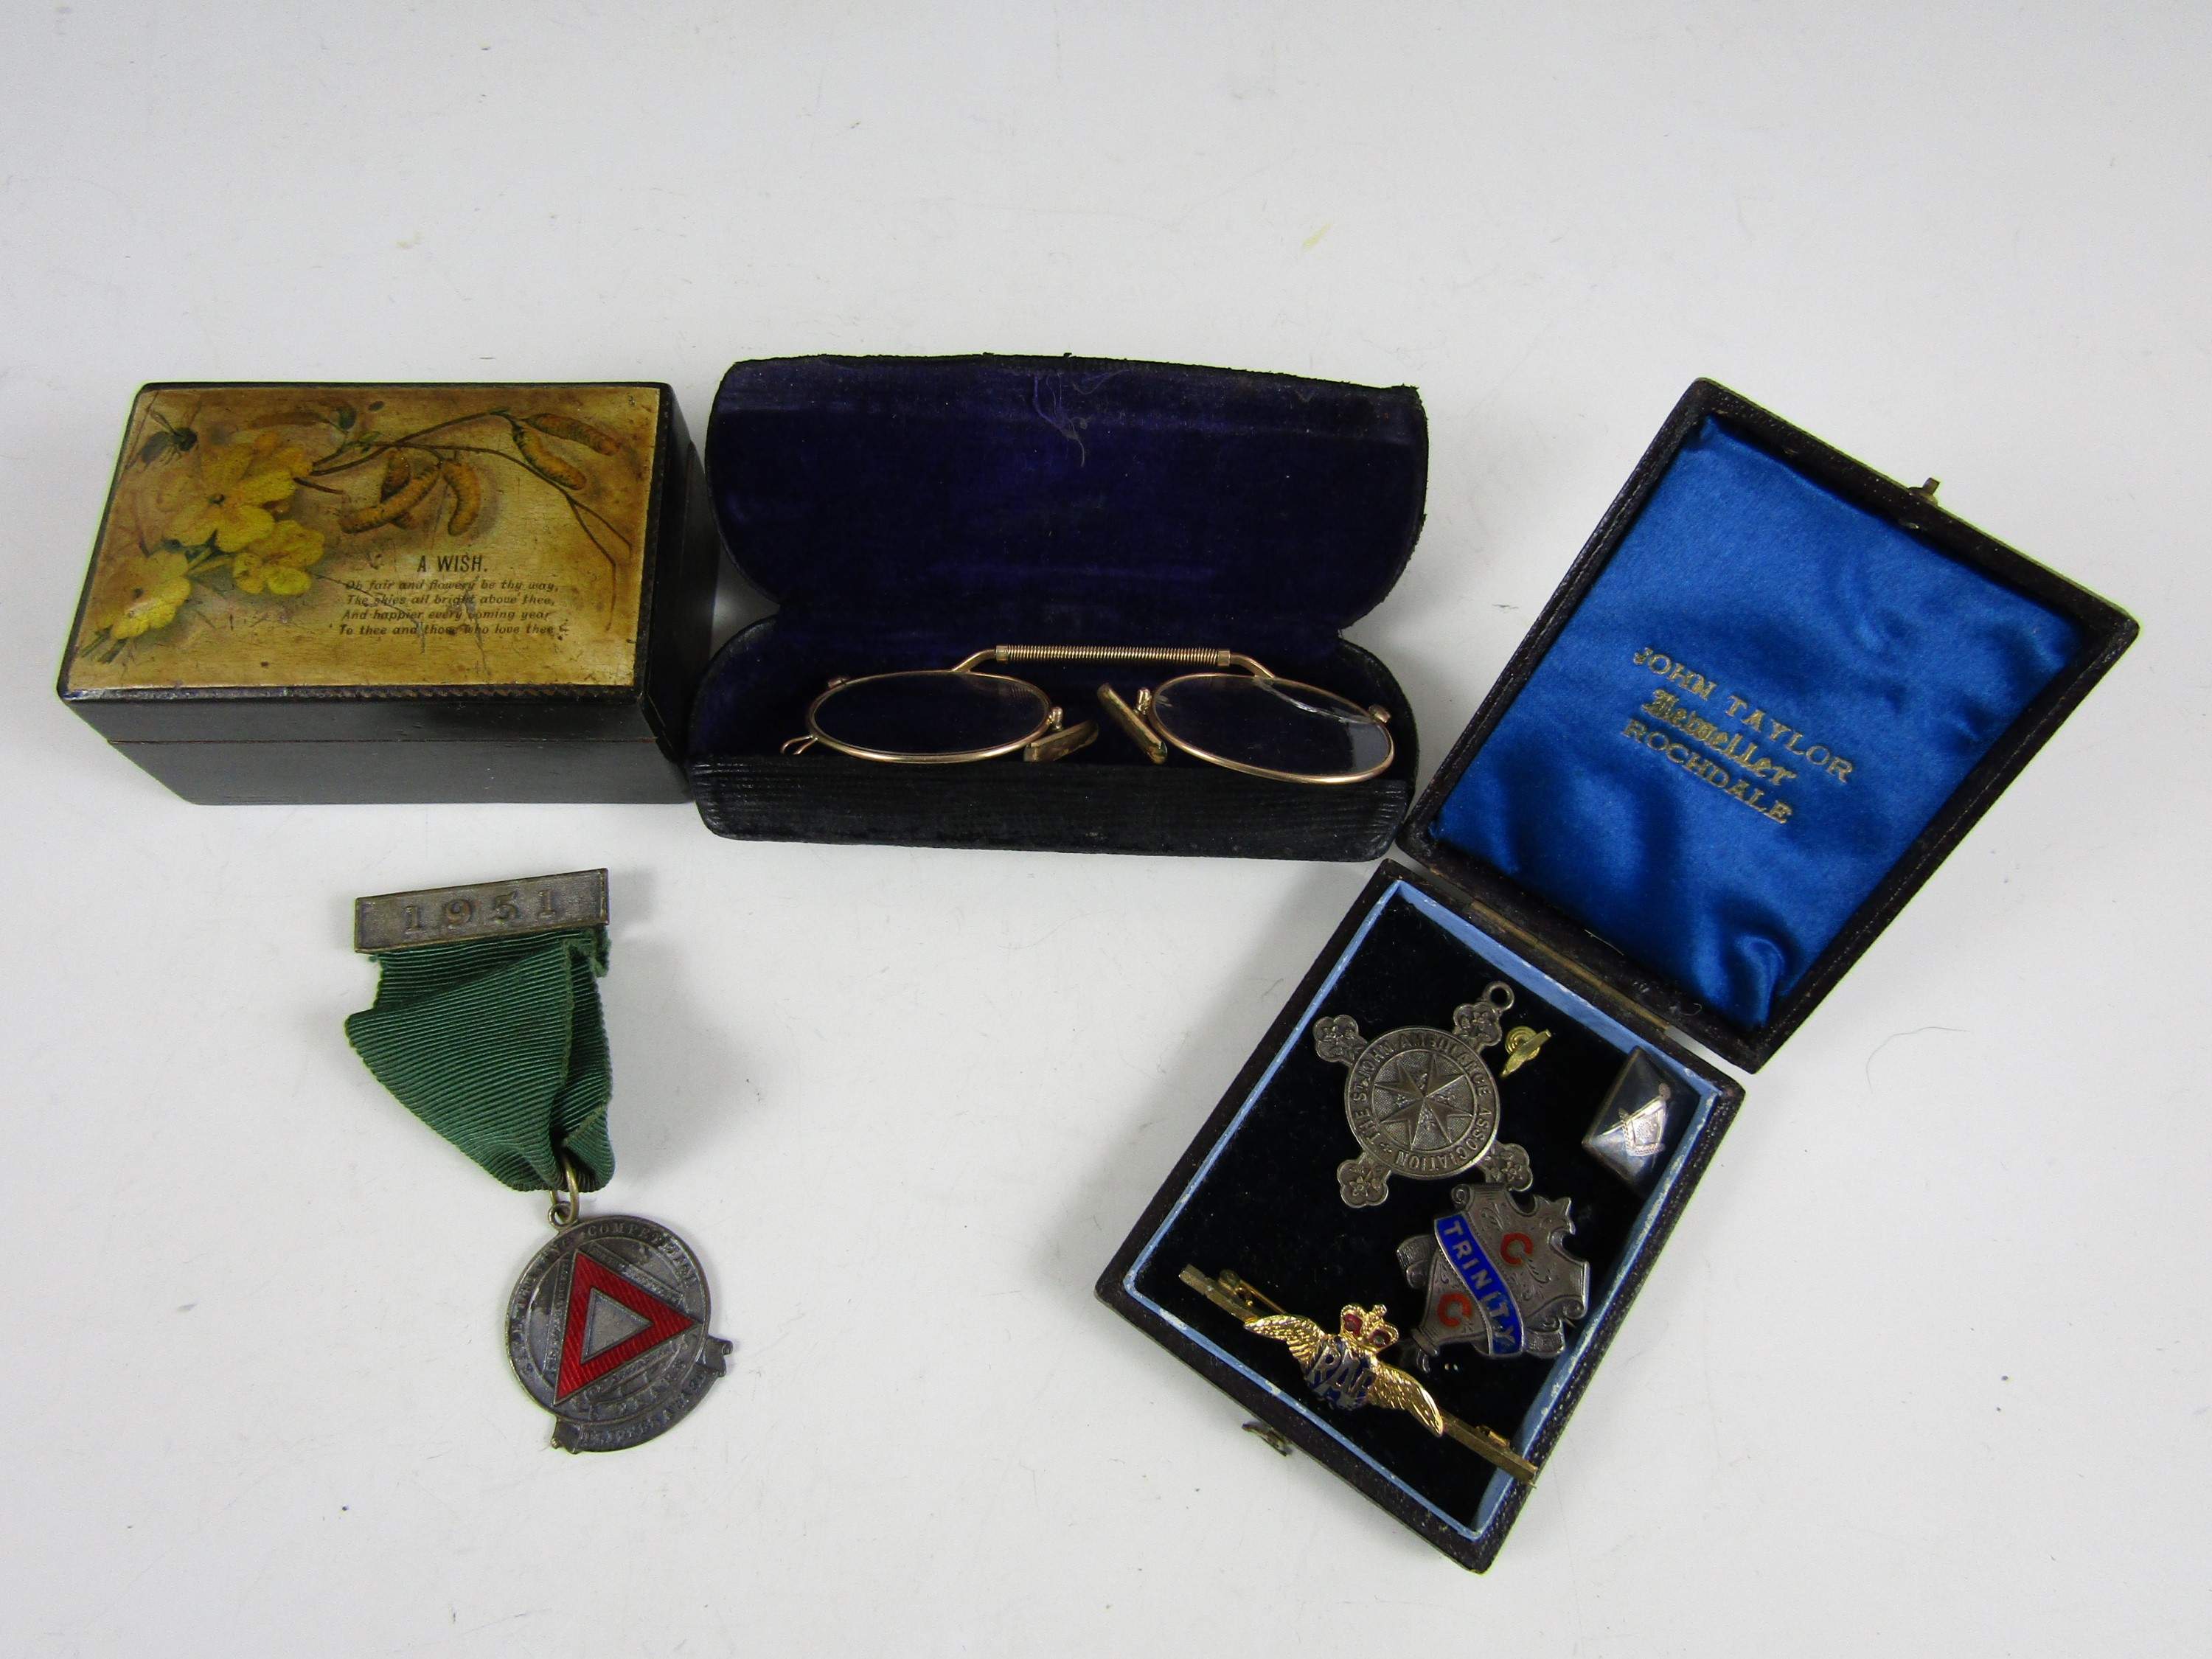 Lot 37 - Sundry collectors' items including 19th and early 20th Century silver prize fob medallions, a rolled